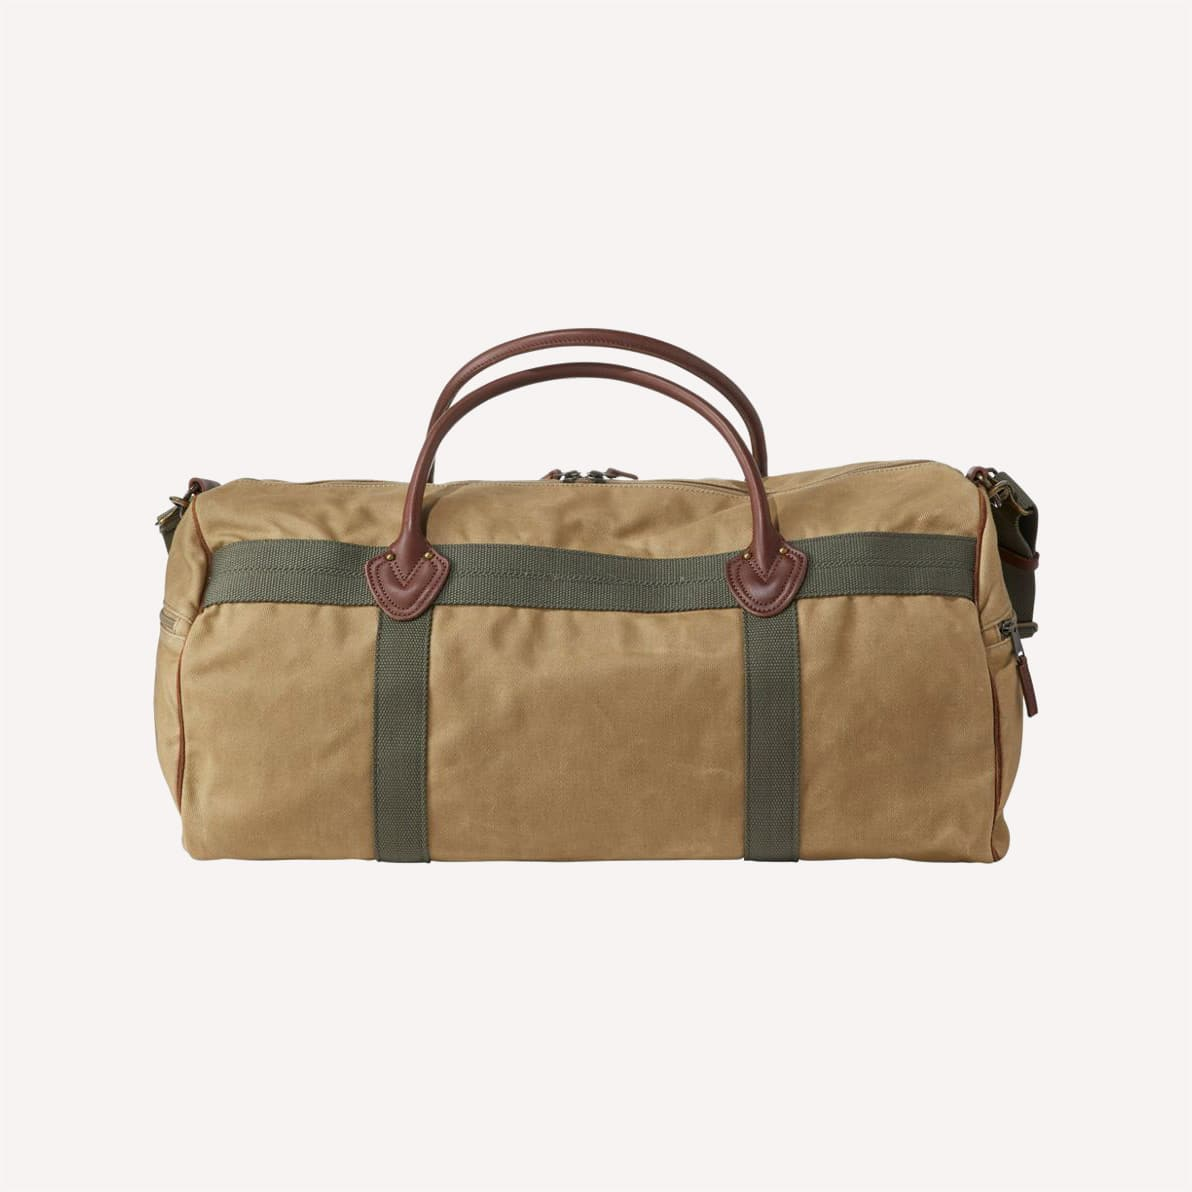 L.L. Bean Waxed Canvas Duffle